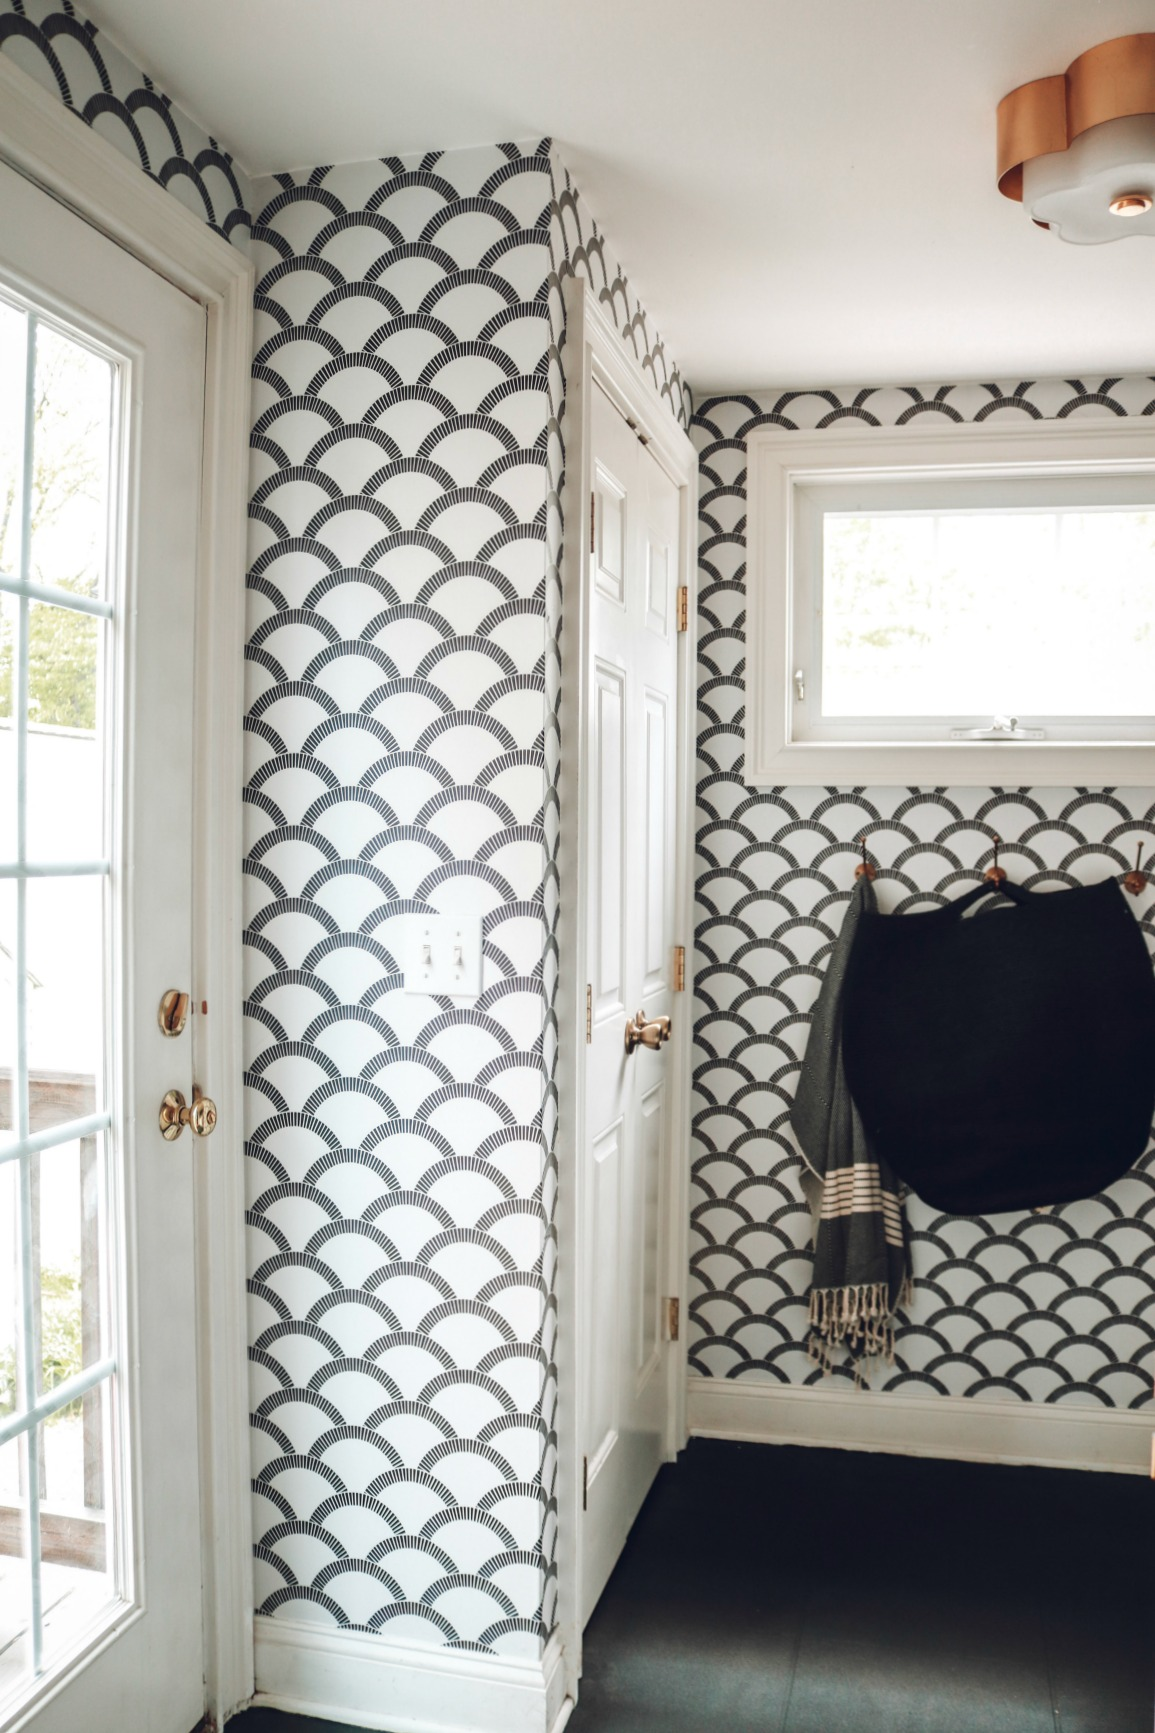 Laundry Room- Removable Wallpaper and Painted Laminate Floor